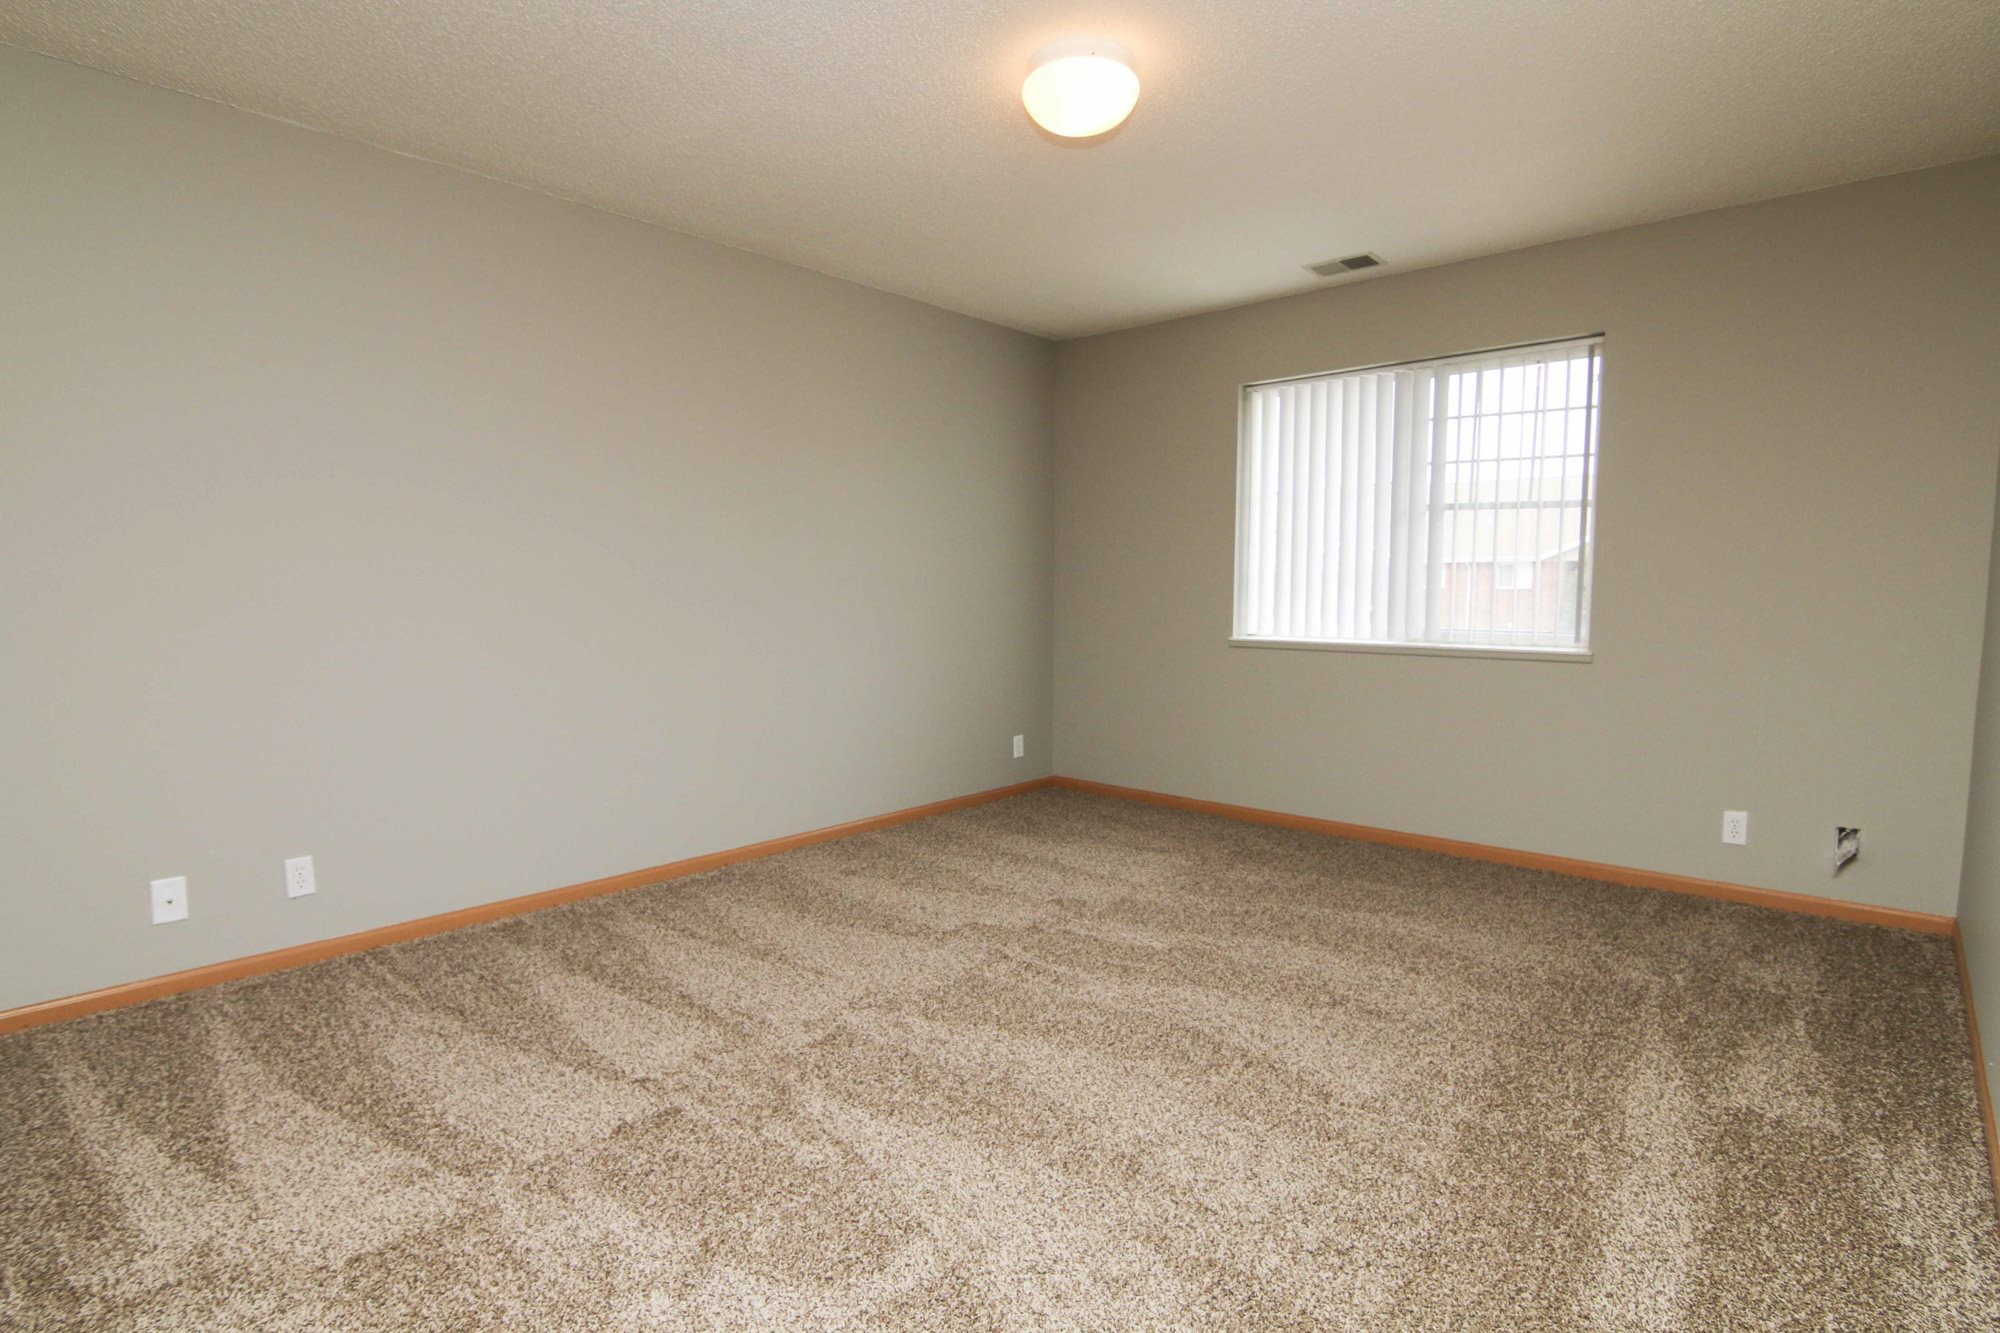 Interiors-Newly updated three bedroom apartment at Northbrook Apartments